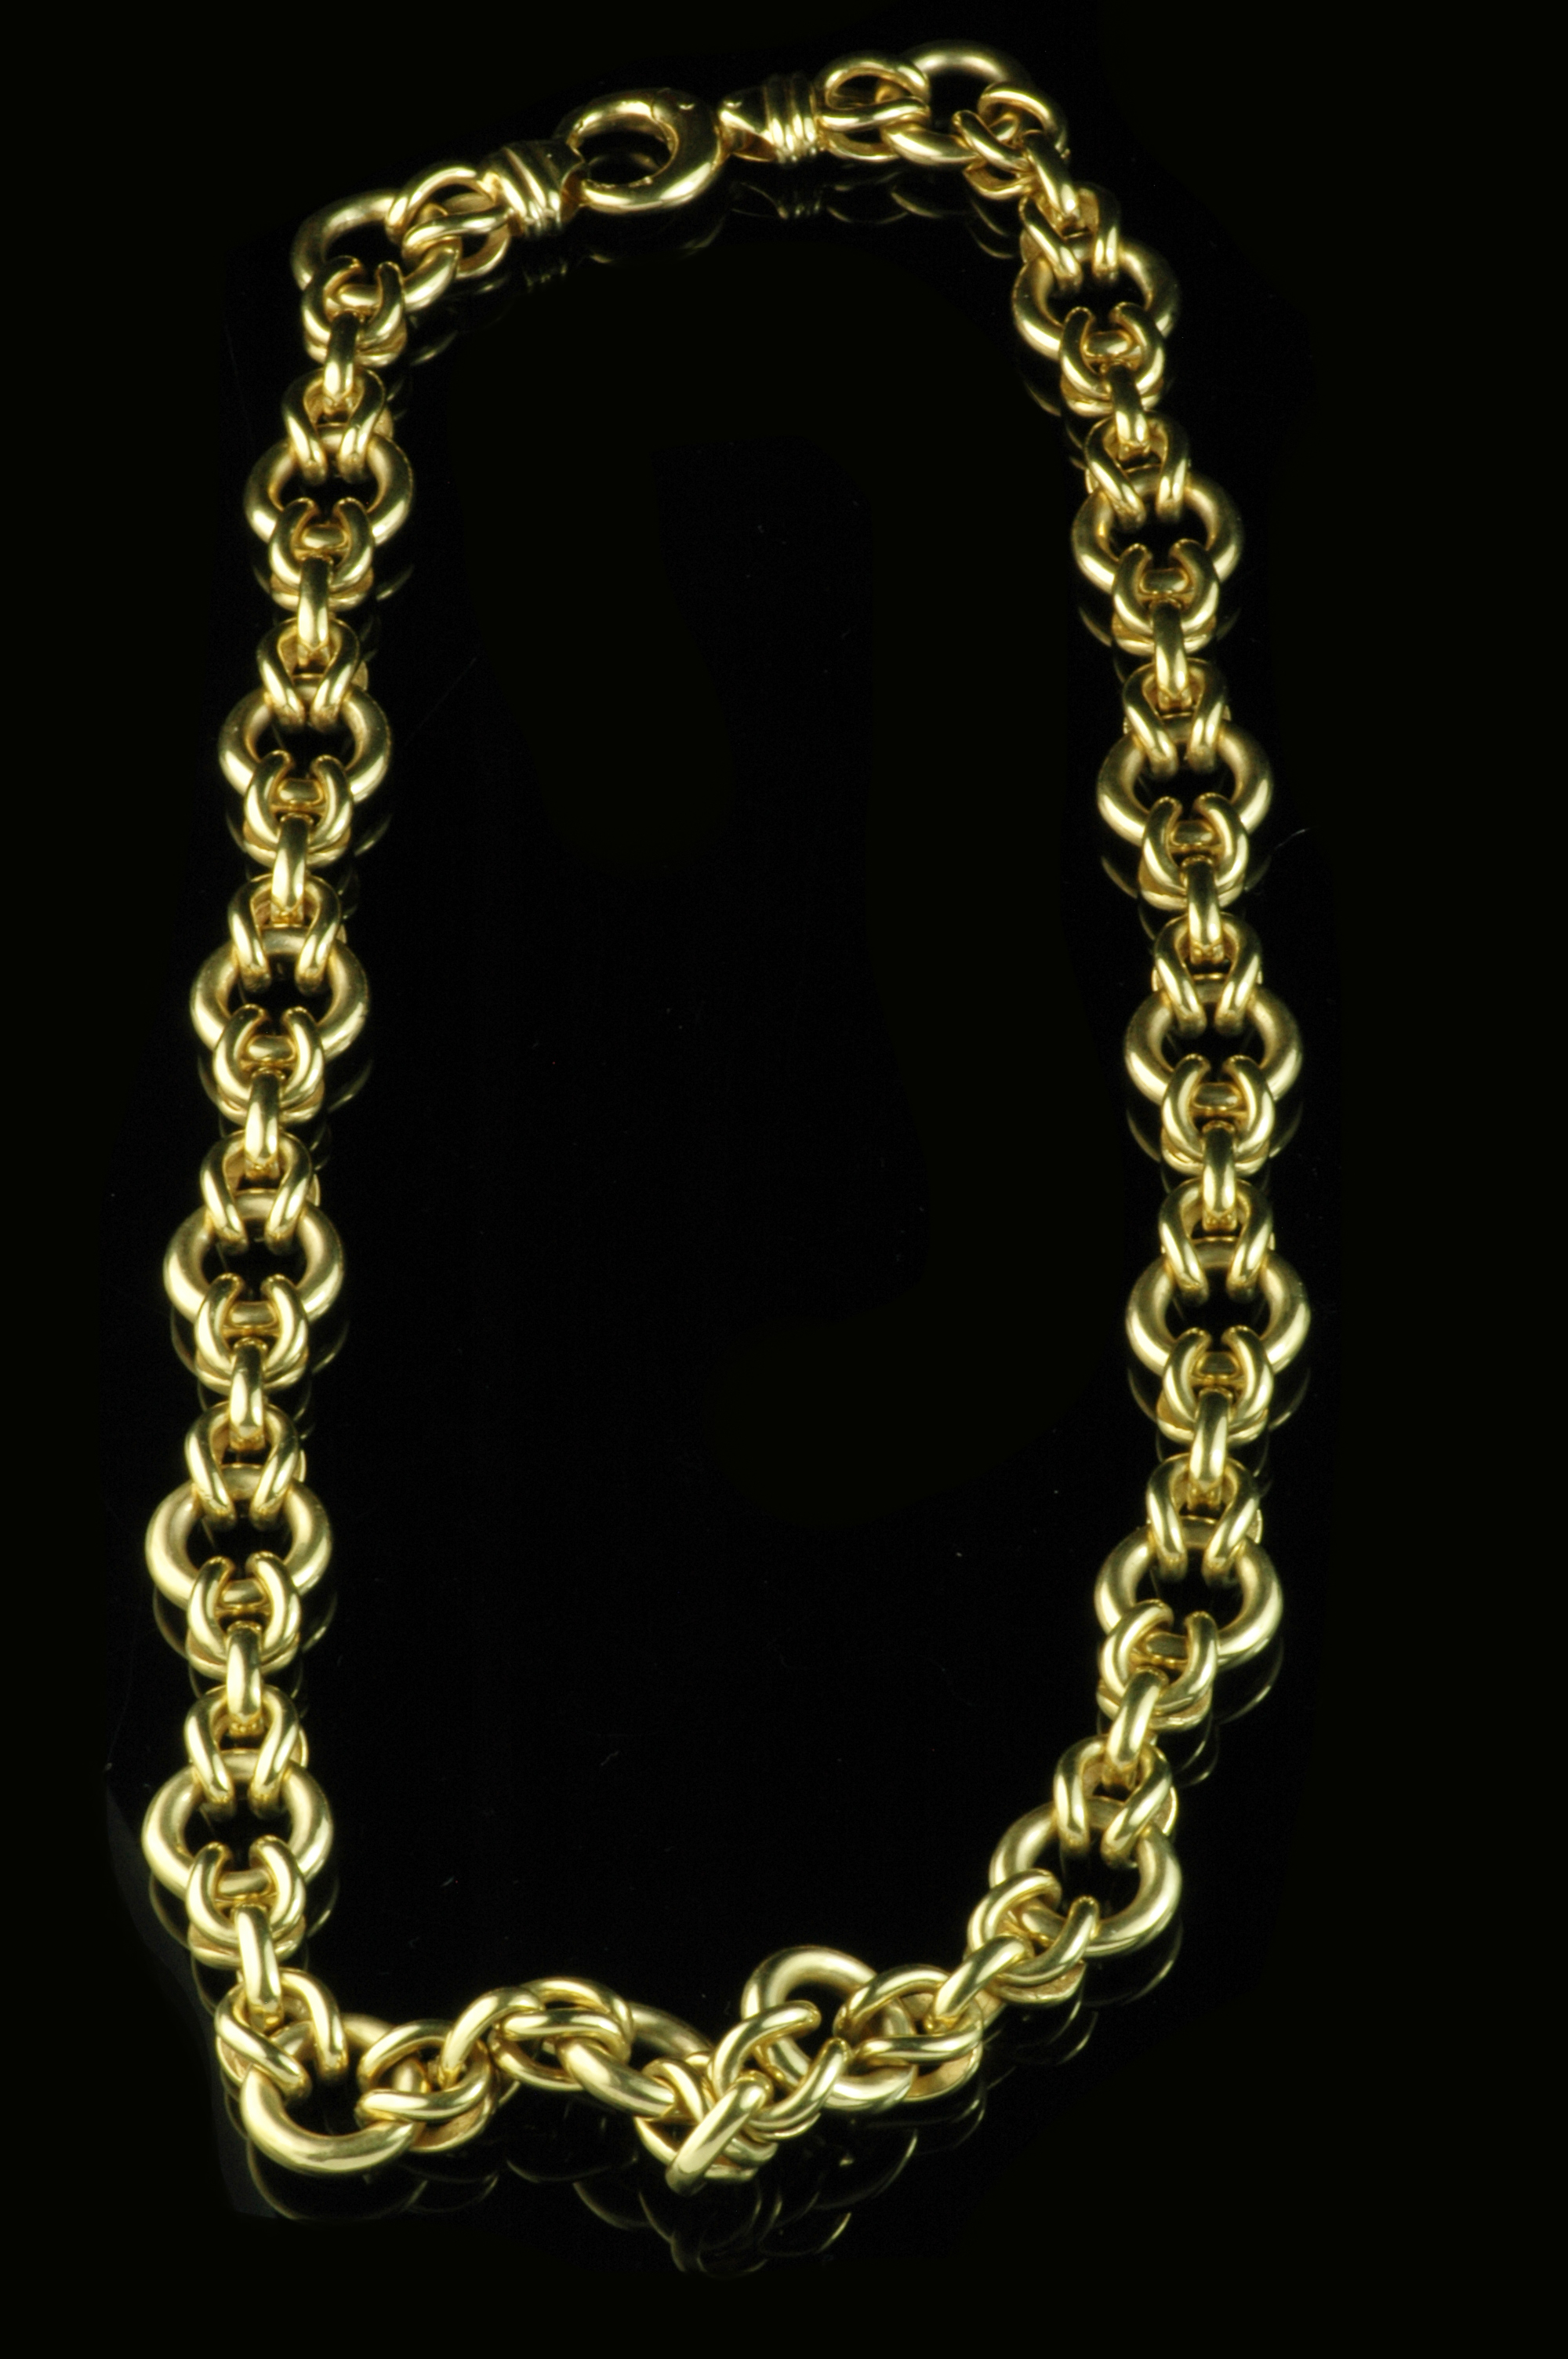 gold chain2